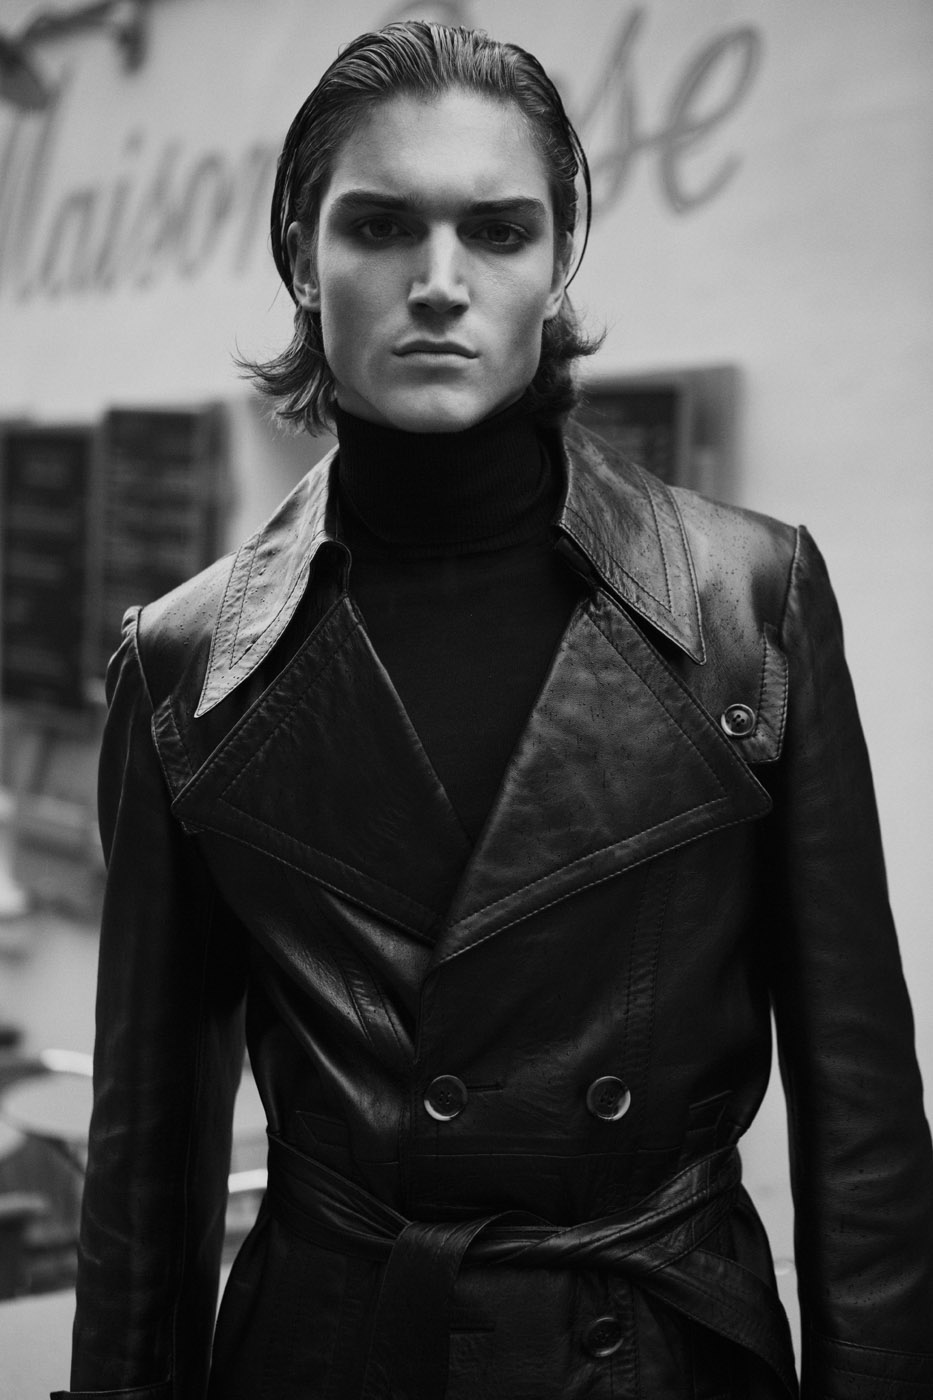 A PARIS by Frederic Monceau for CHASSEUR MAGAZINE